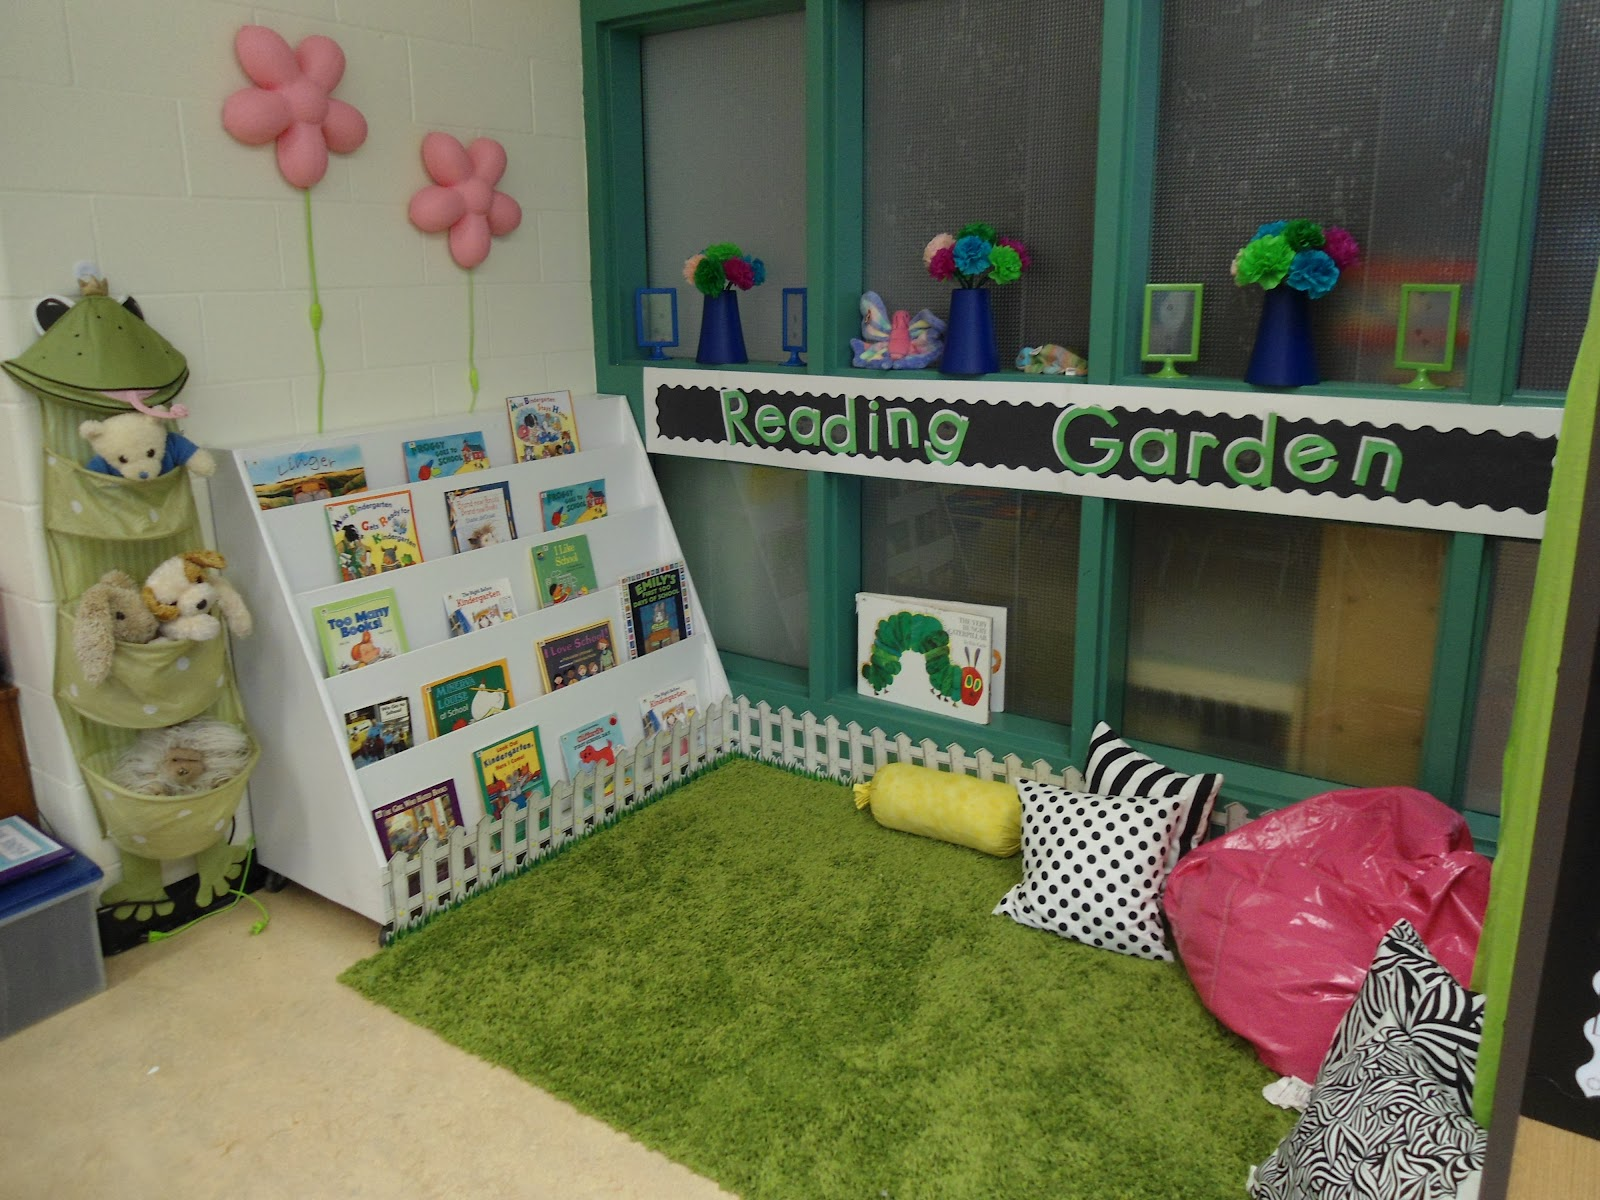 homework 21 the garden border positive thinking essay writing the css zen garden invites you to relax and meditate on the important lessons of the masters the zen garden aims to excite inspire and encourage